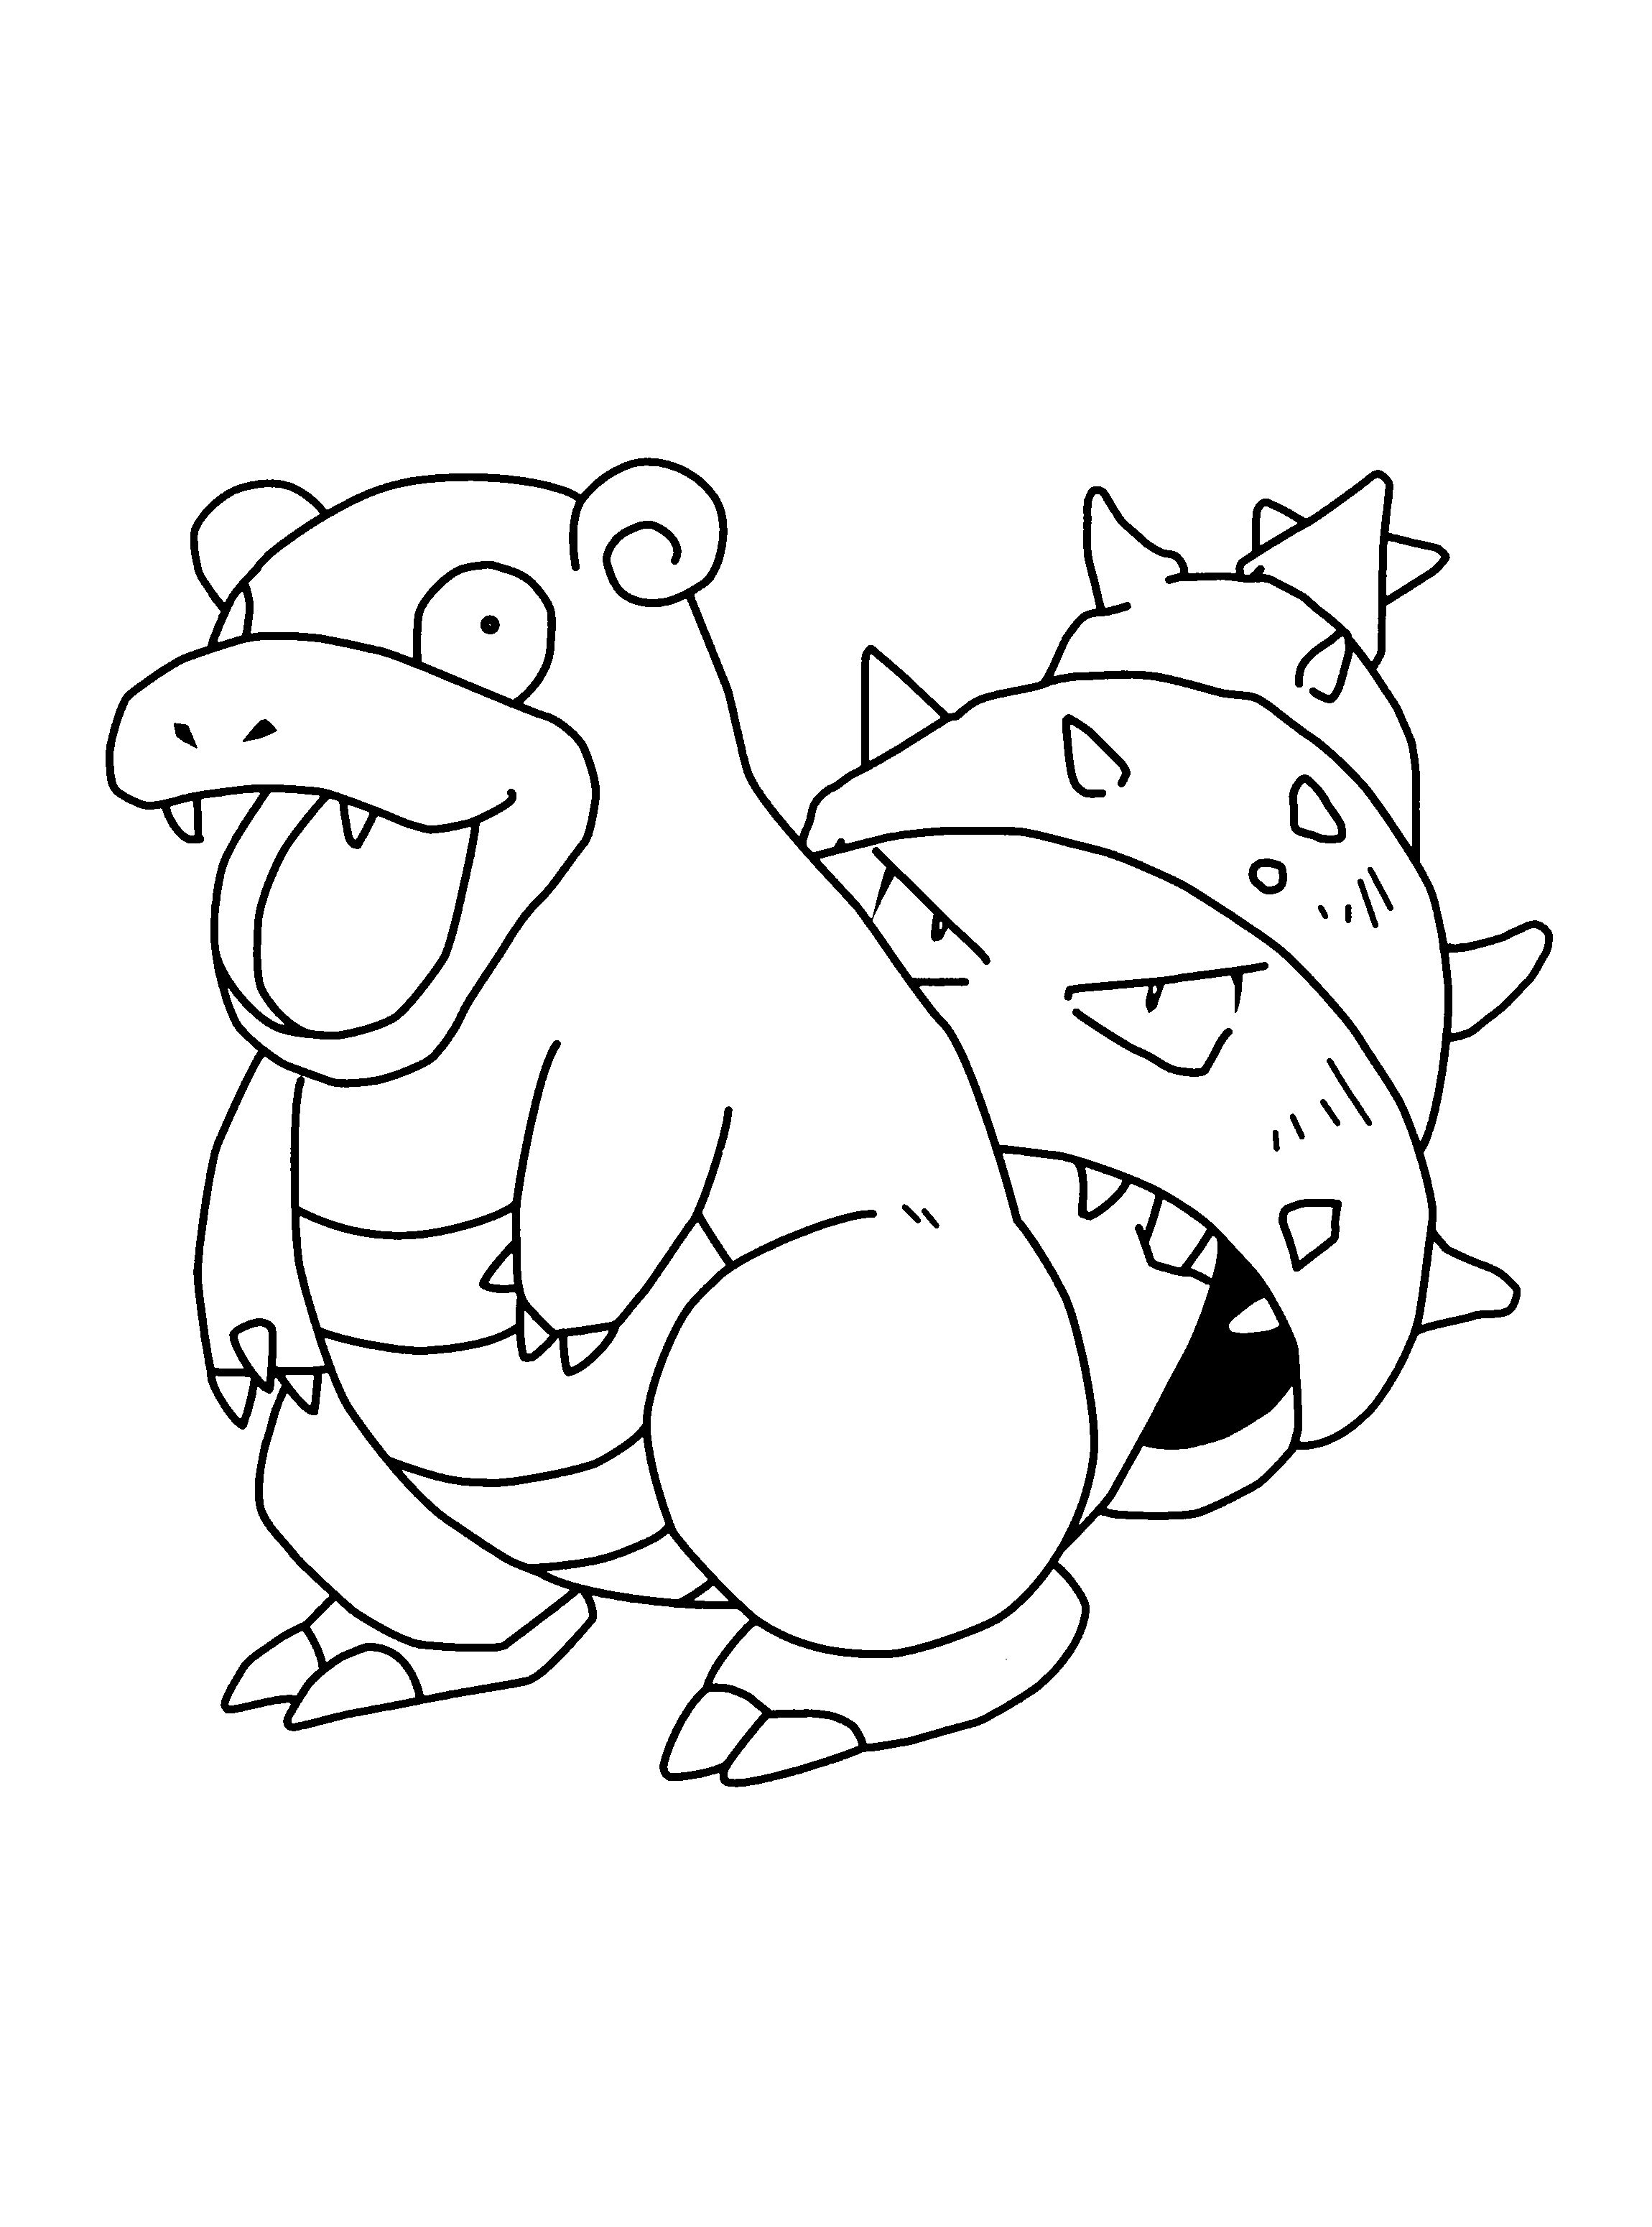 Slowbro Coloring Pages To Print Pokemon Coloring Pokemon Coloring Pages Pokemon Coloring Sheets